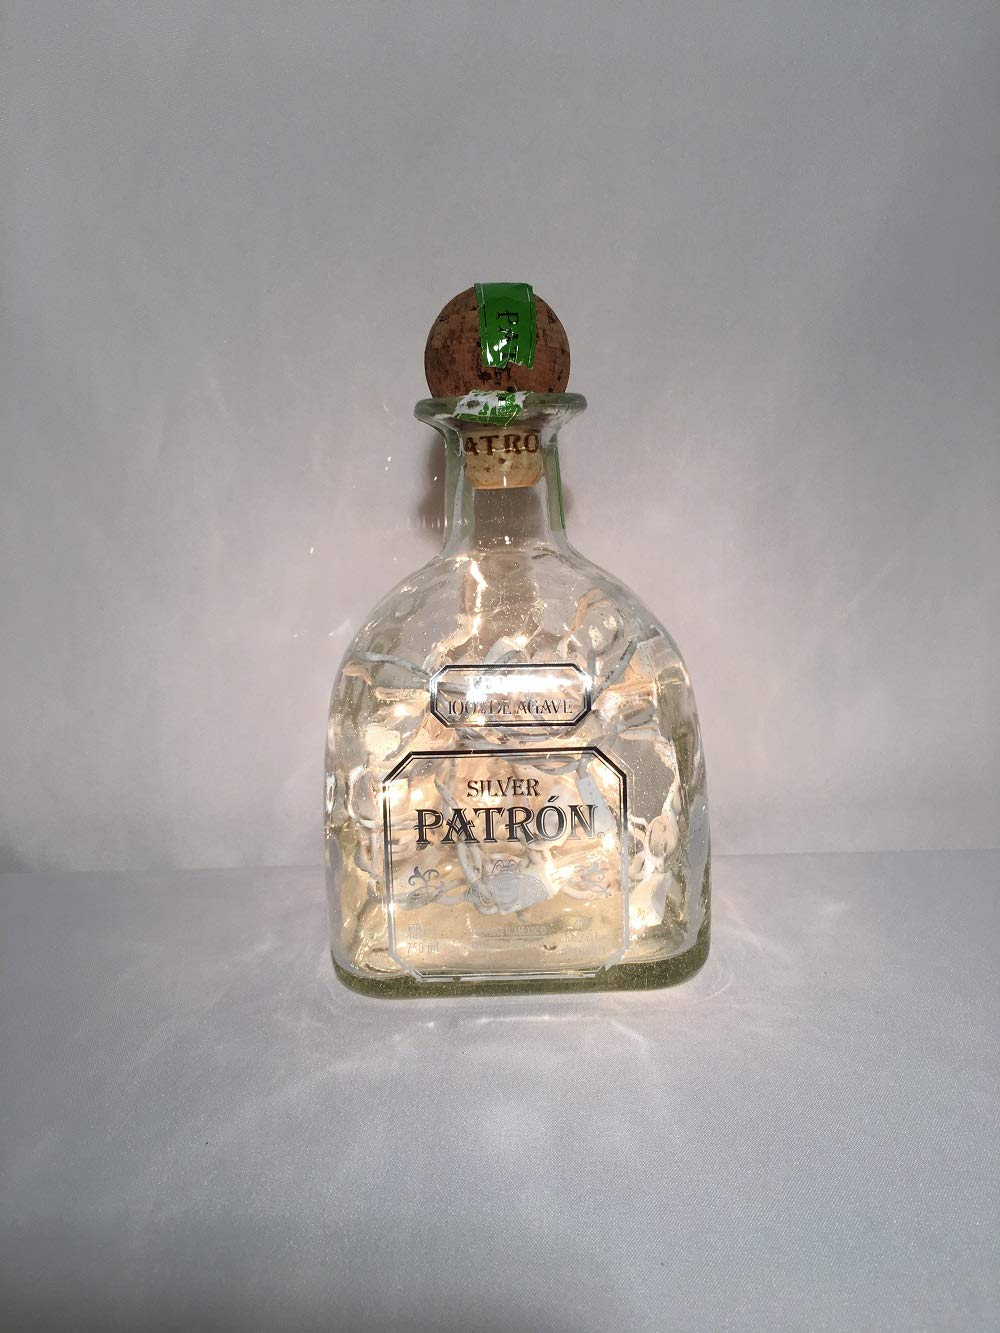 5 Used Patron Tequila Corks Straight From The Bottle Great For Crafts!!